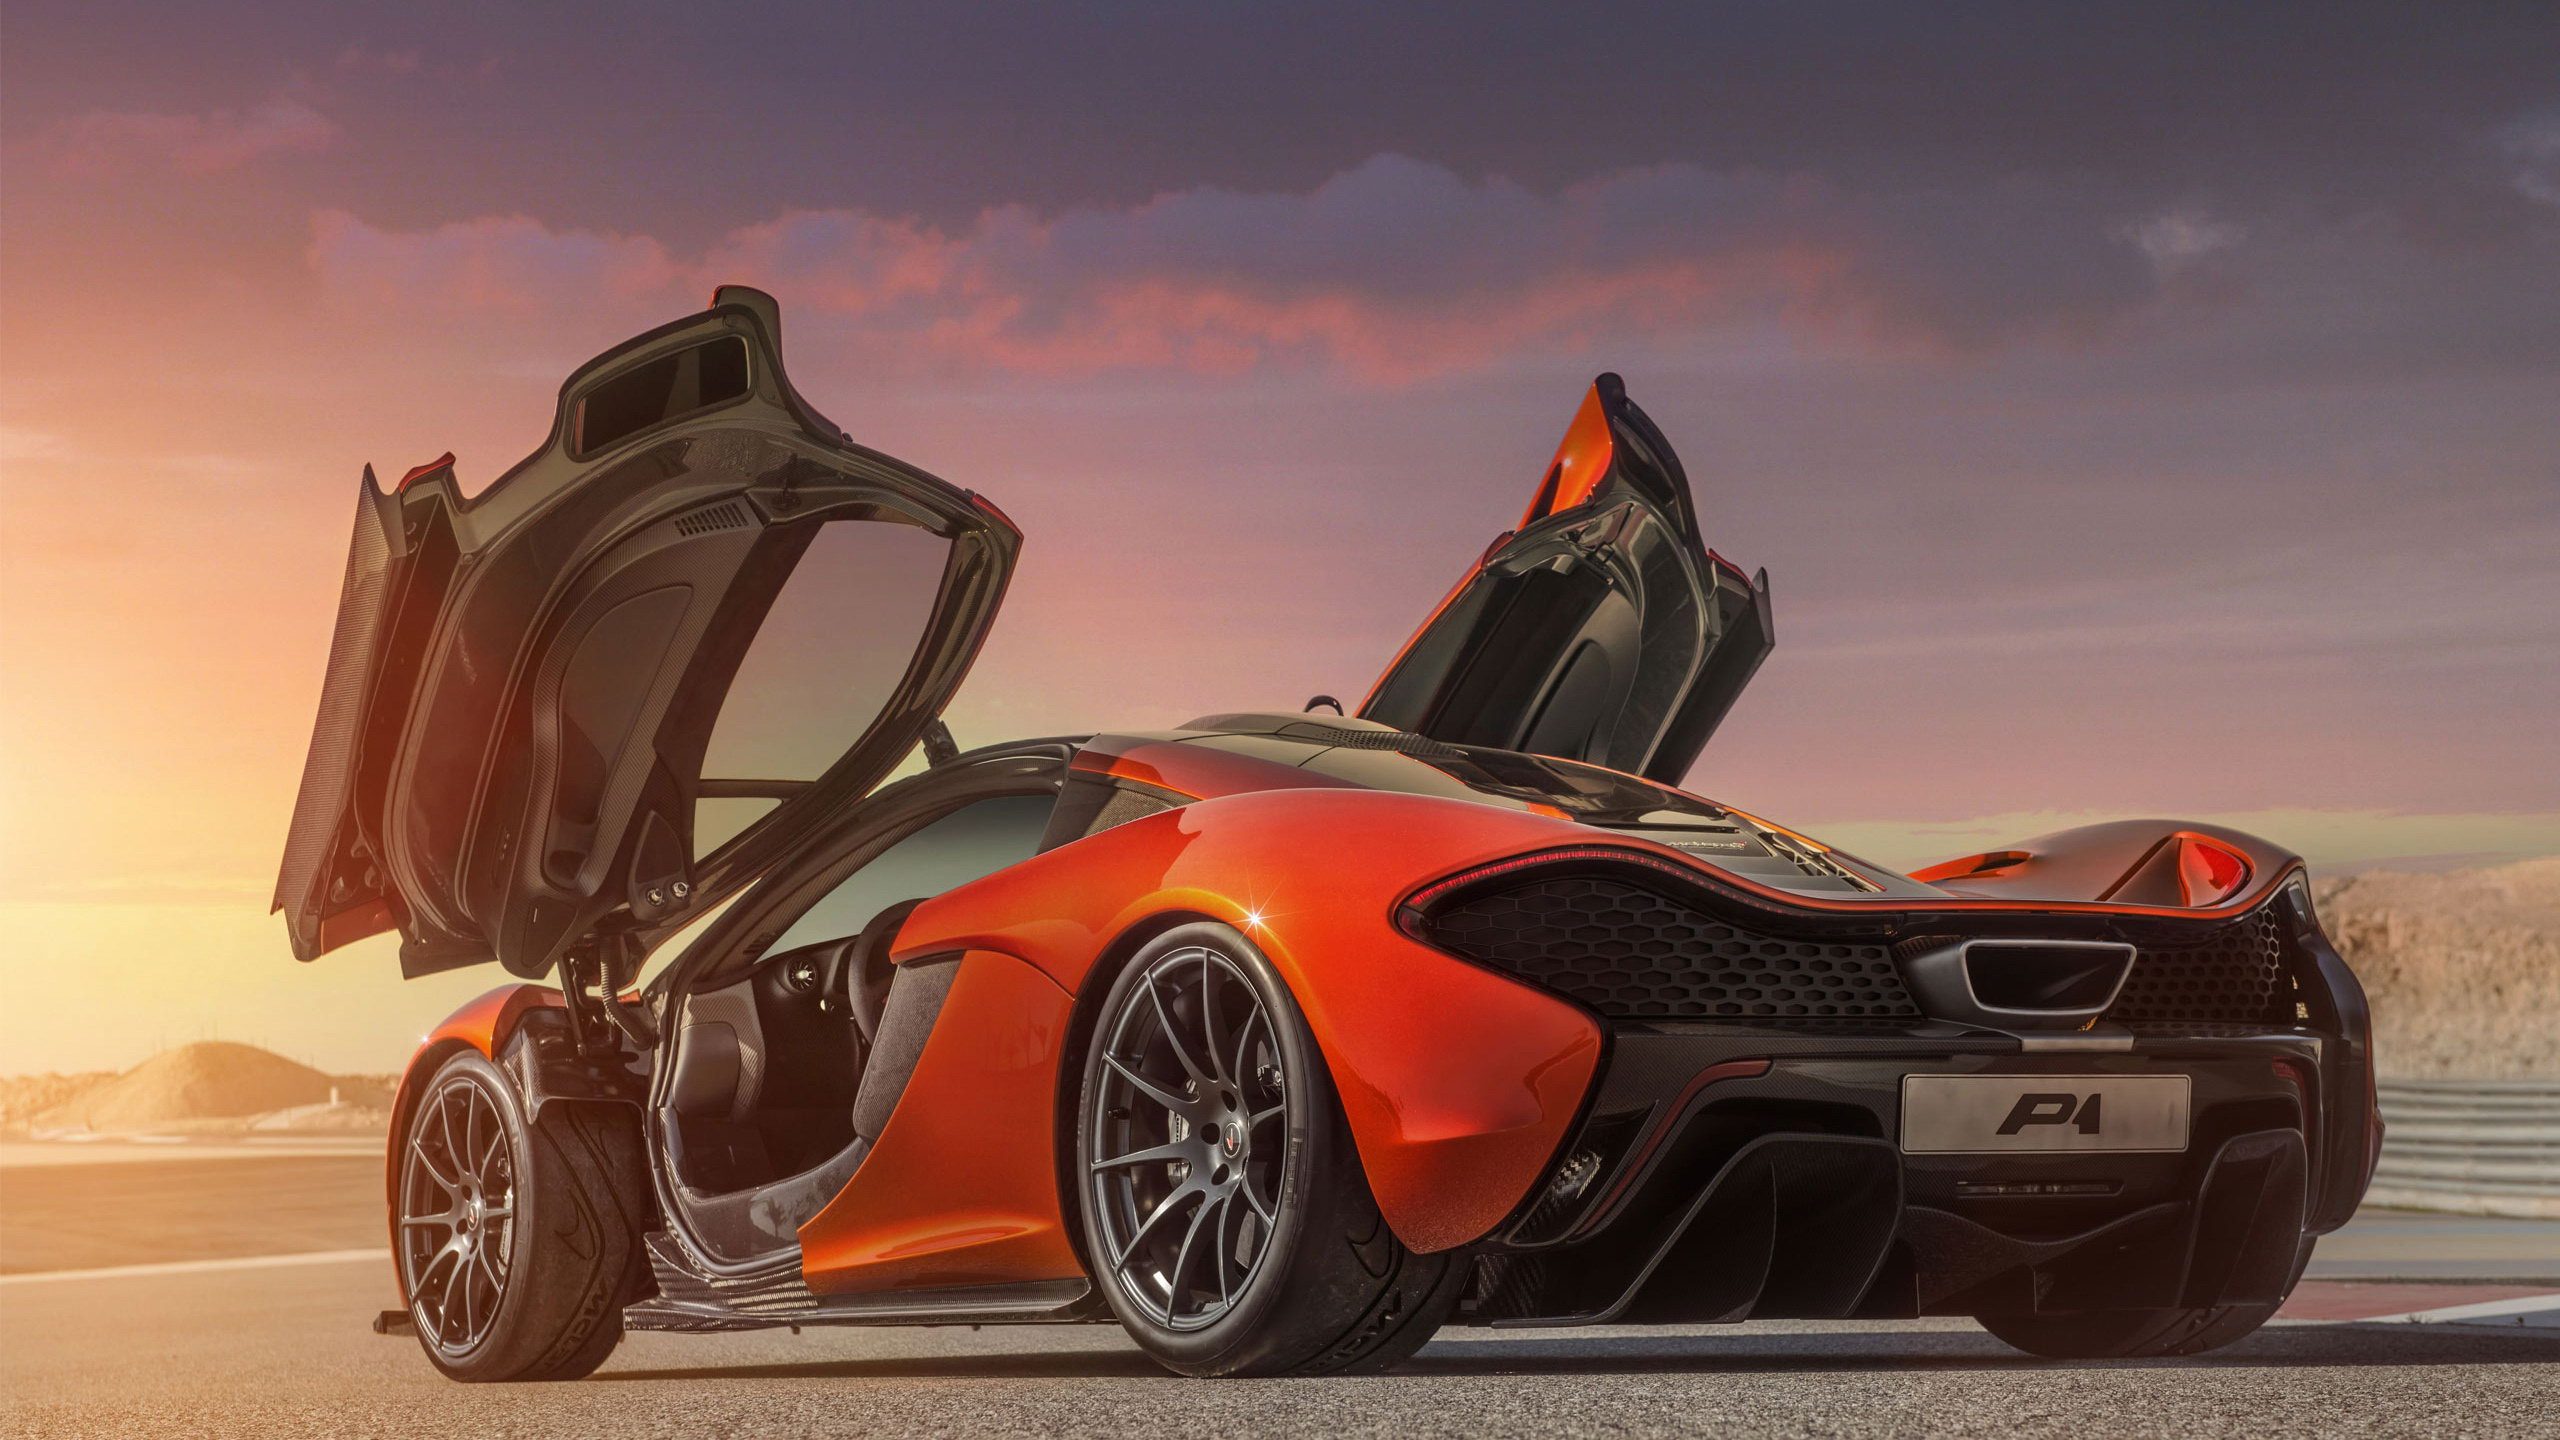 2014 Car S Wallpaper 2560x1440 15785